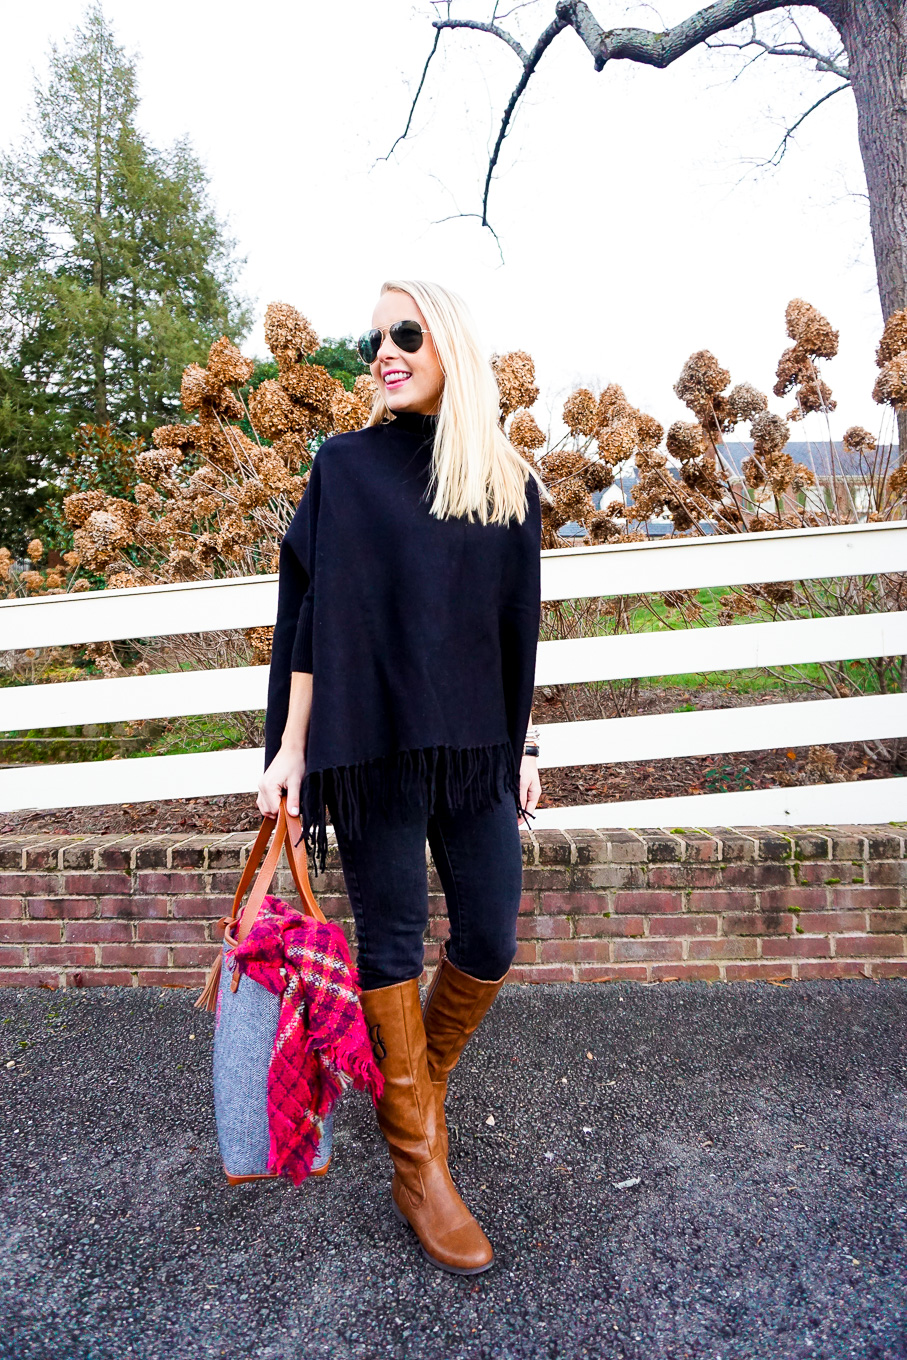 amy-littleson-from-i-believe-in-pink-in-united-monograms-monogram-boots-and-tote-with-a-black-tassel-poncho-3